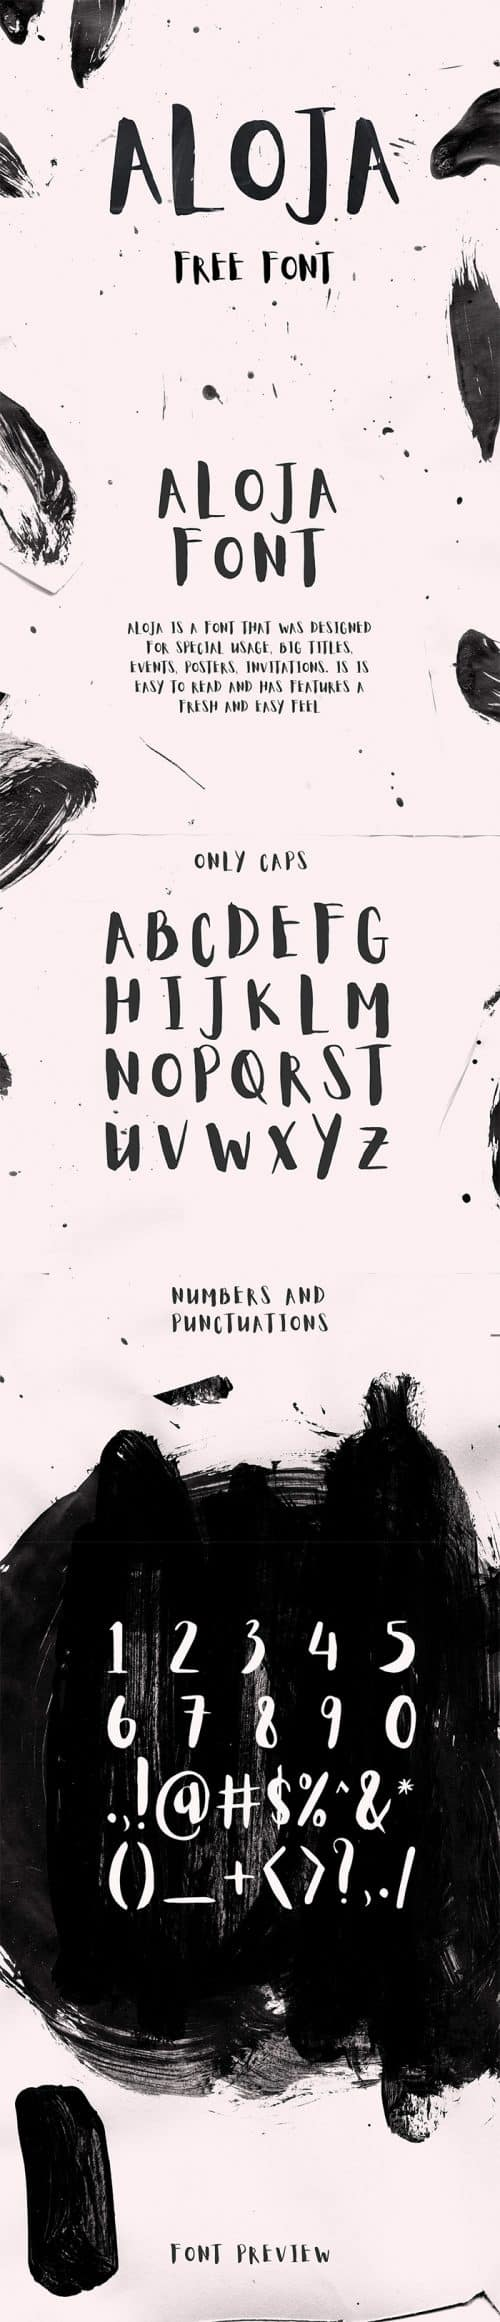 Download the Aloja Light brush typeface for free.